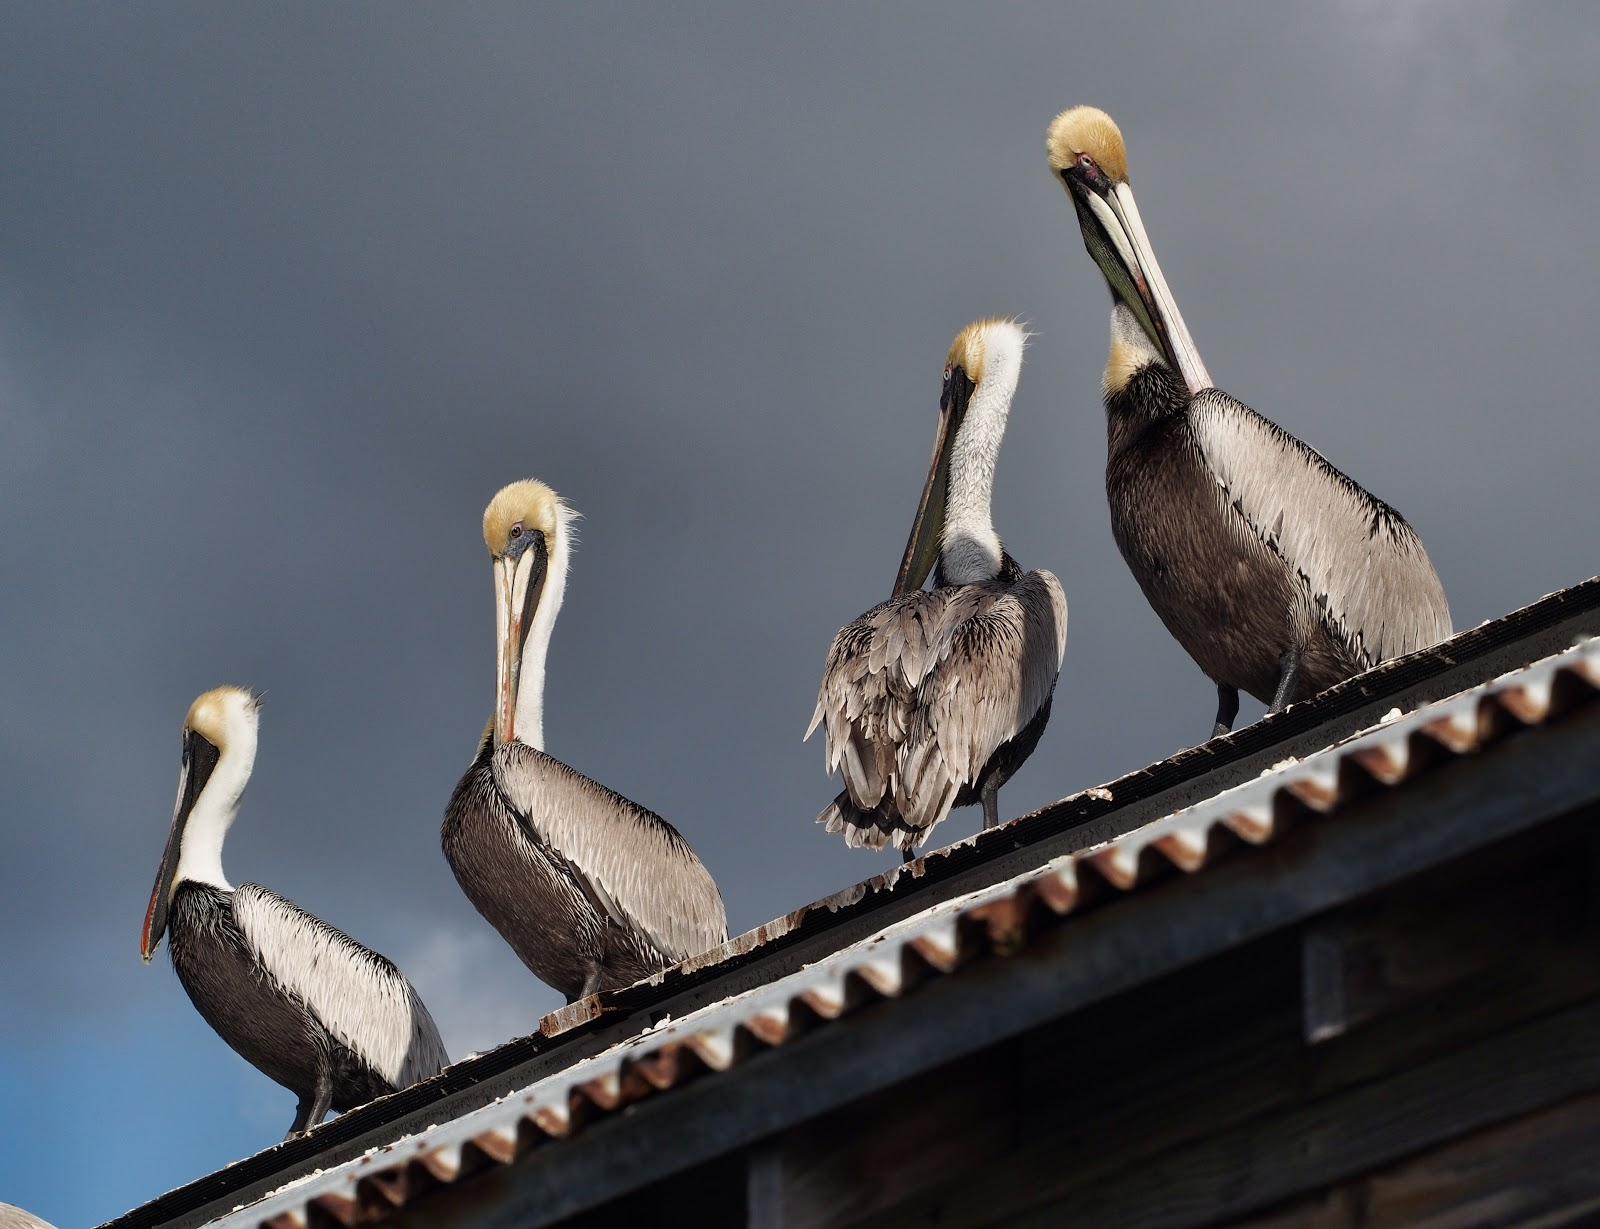 Waiting, #pelicans #pelicans #keywest #Florida #travel 2014